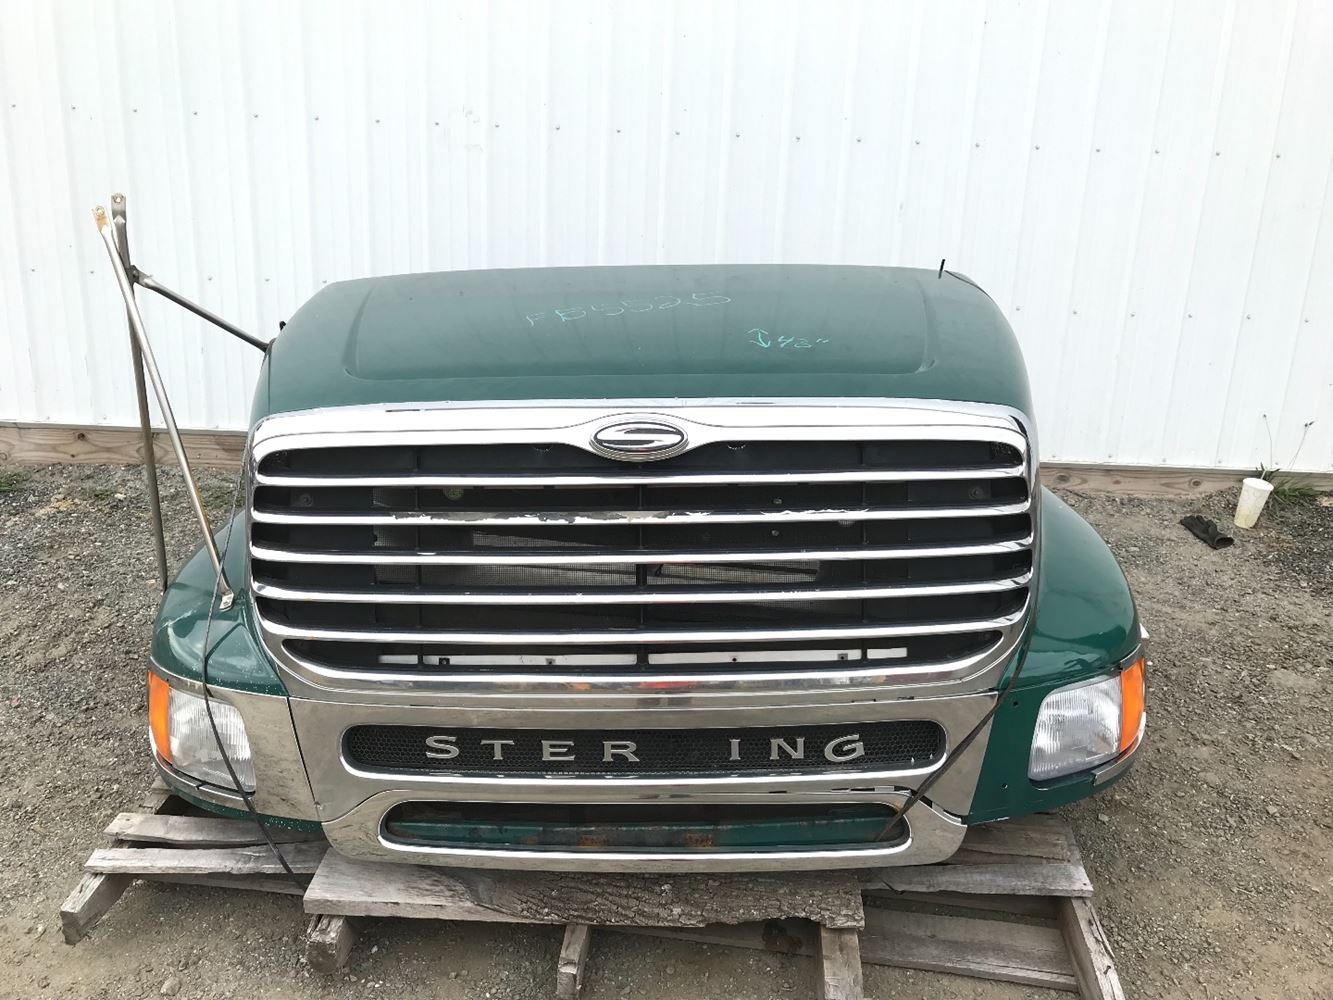 2010 STERLING A9500 HOOD TRUCK PARTS #680078